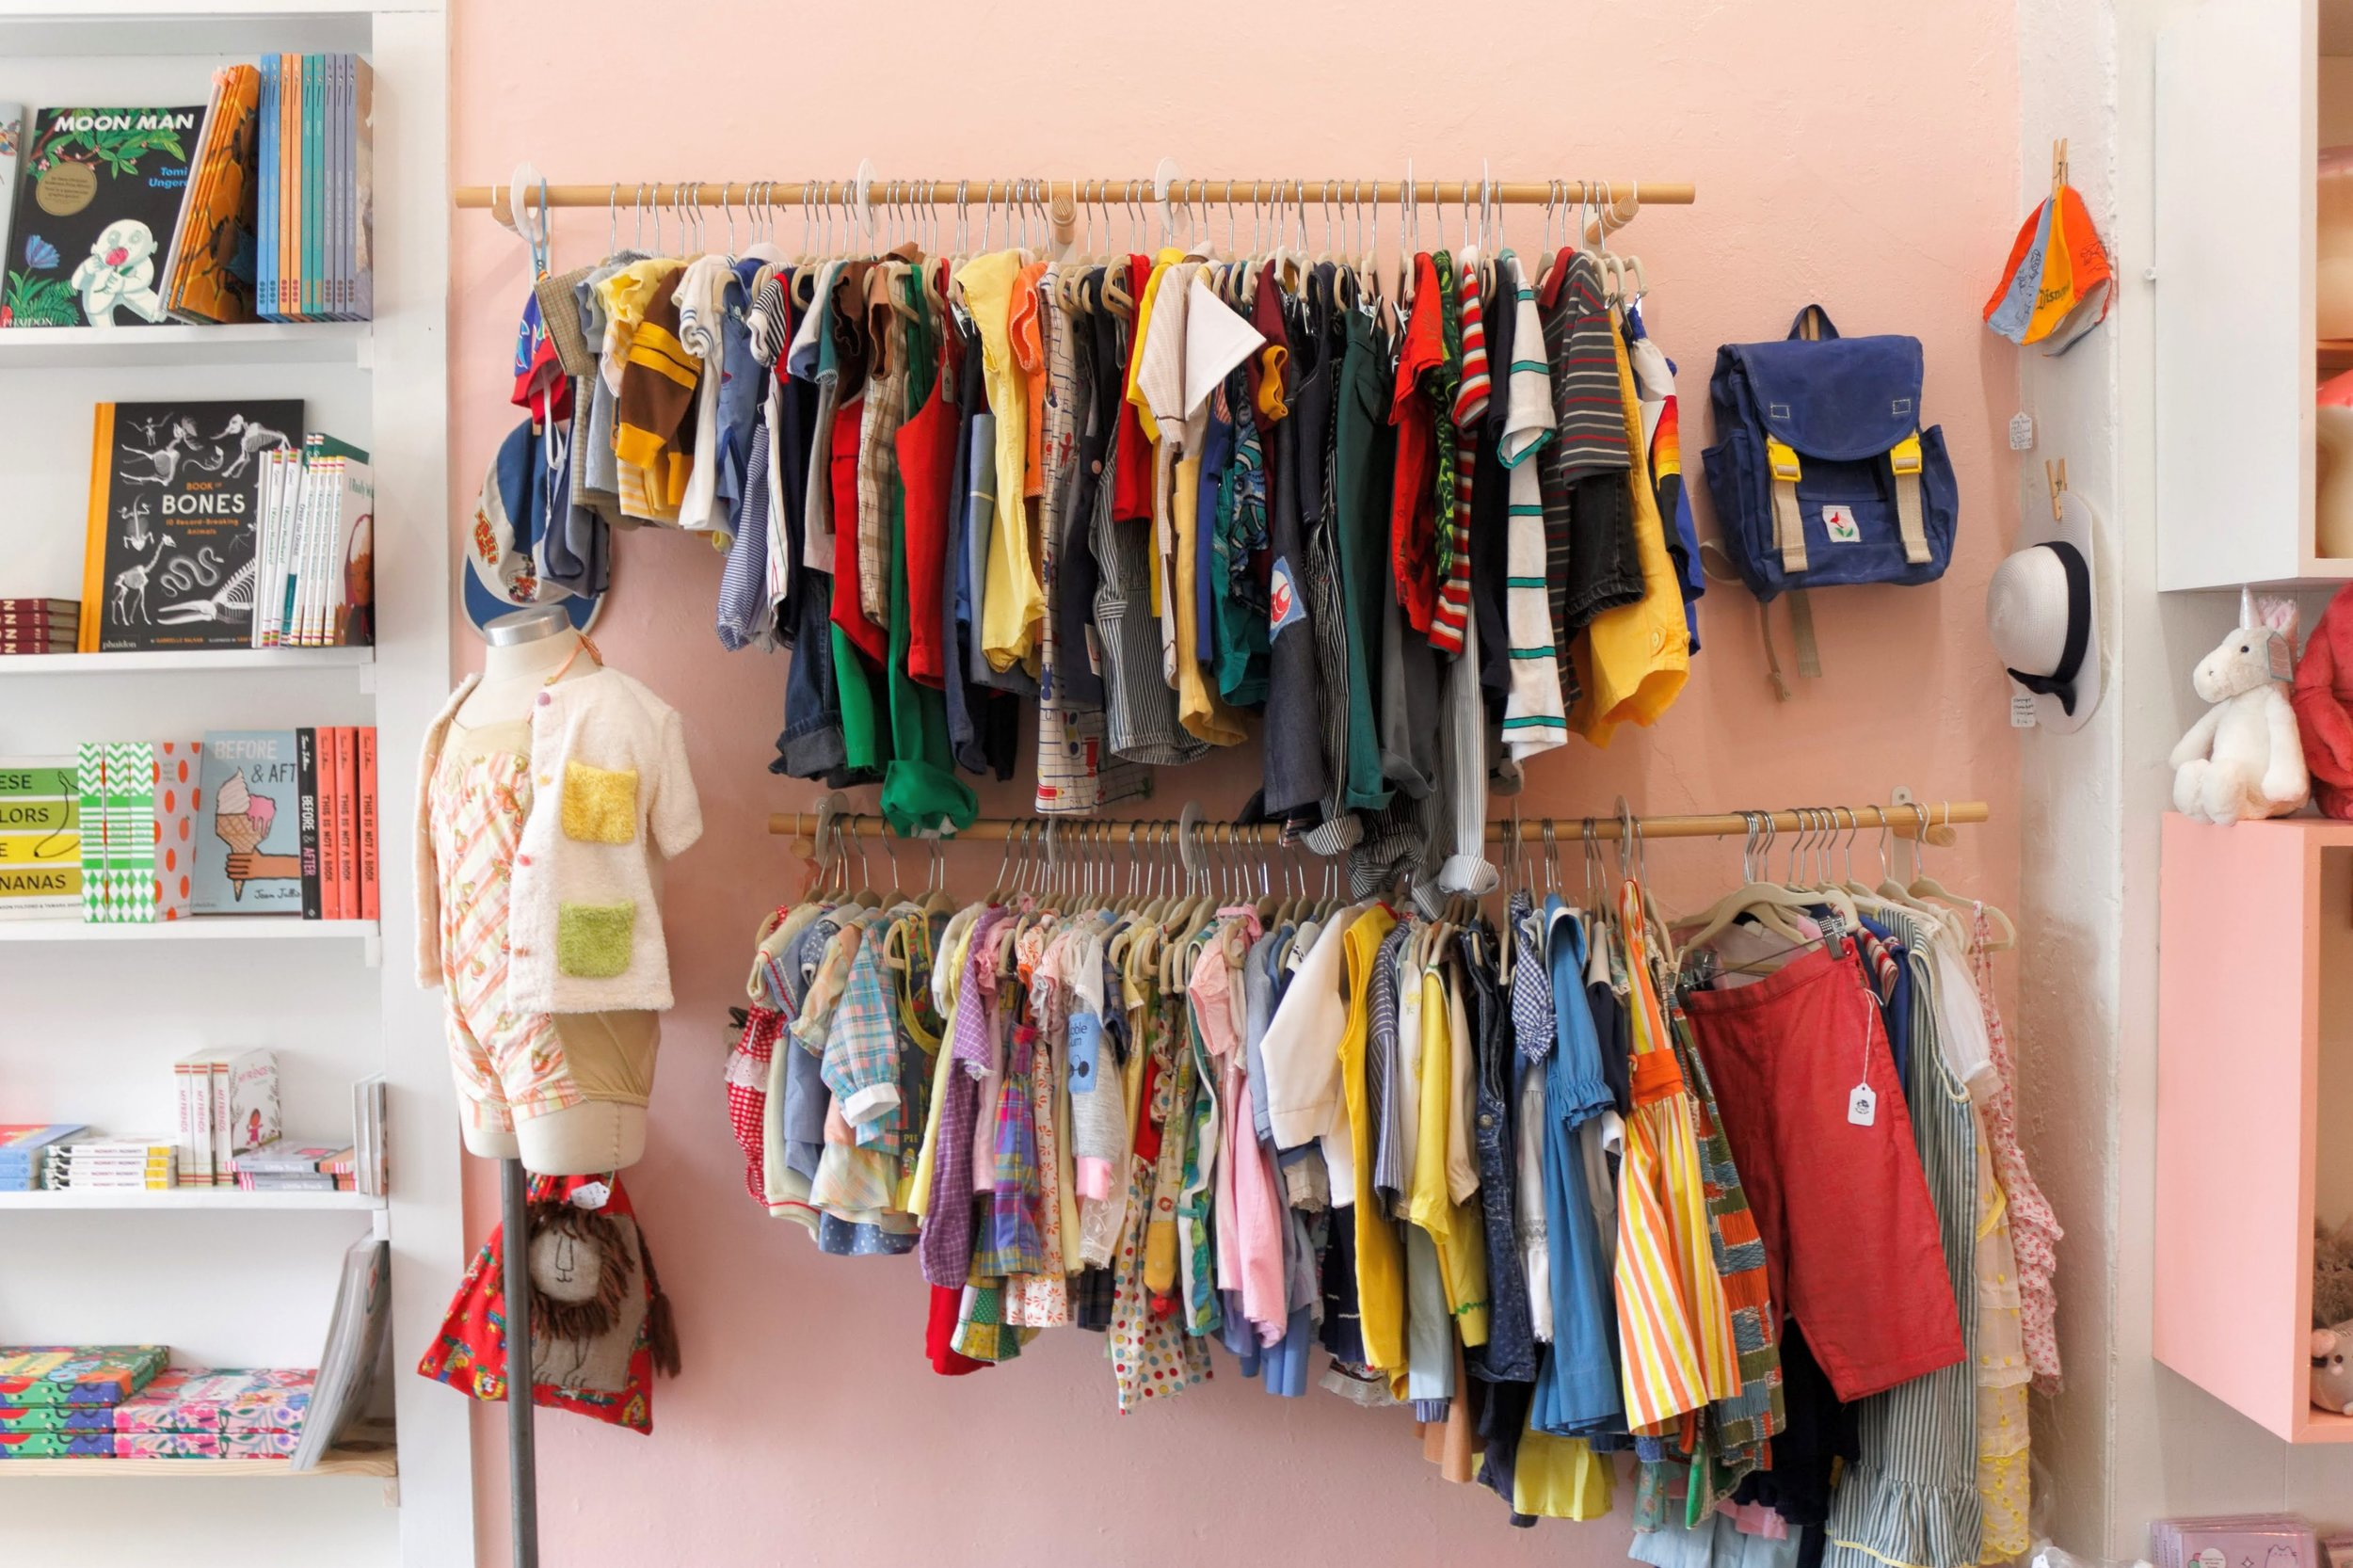 The best kids vintage you'll find around the cities